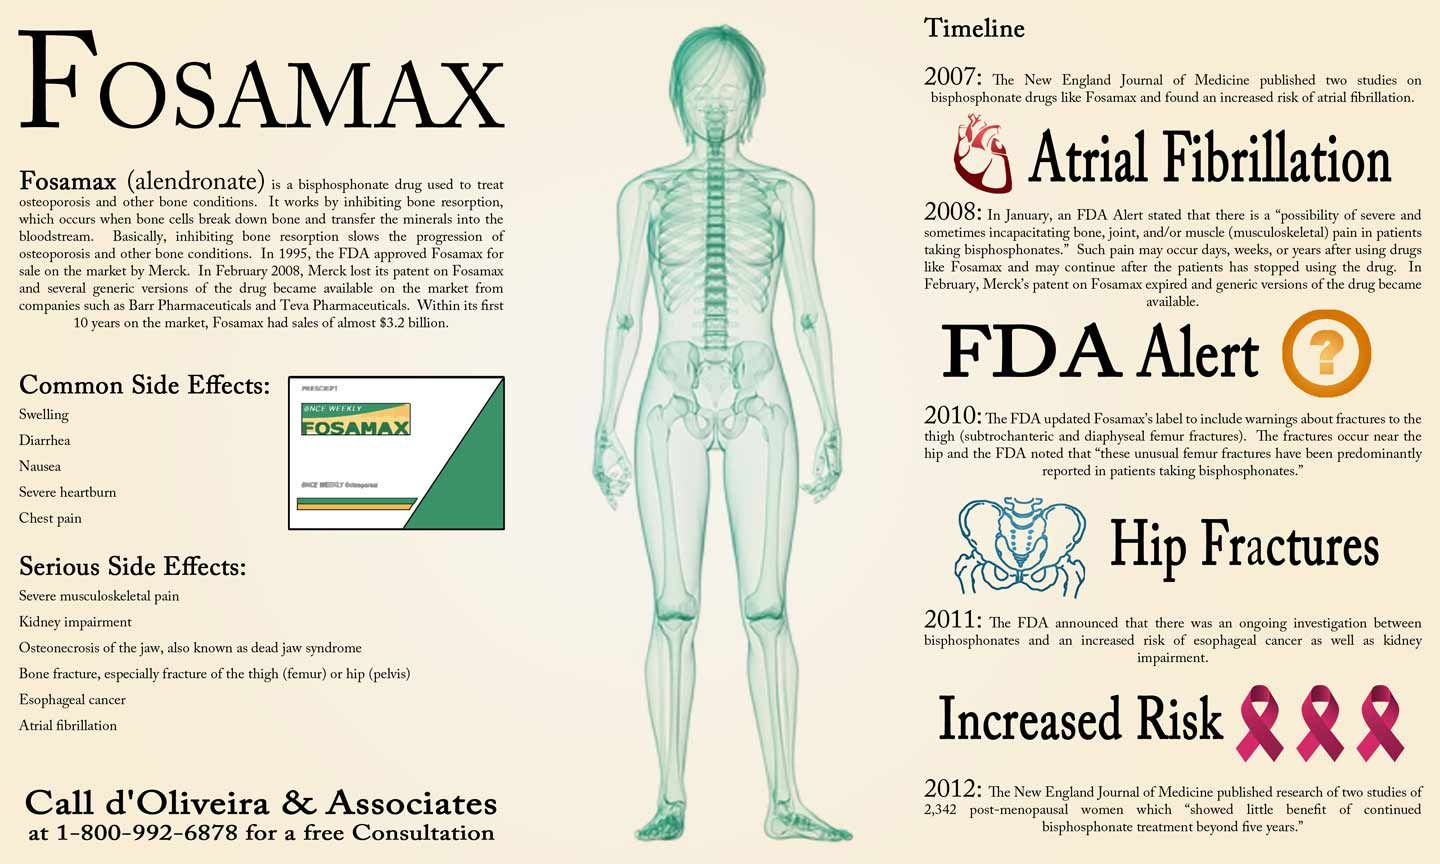 Fosamax More Drug_Warnings_Recalls